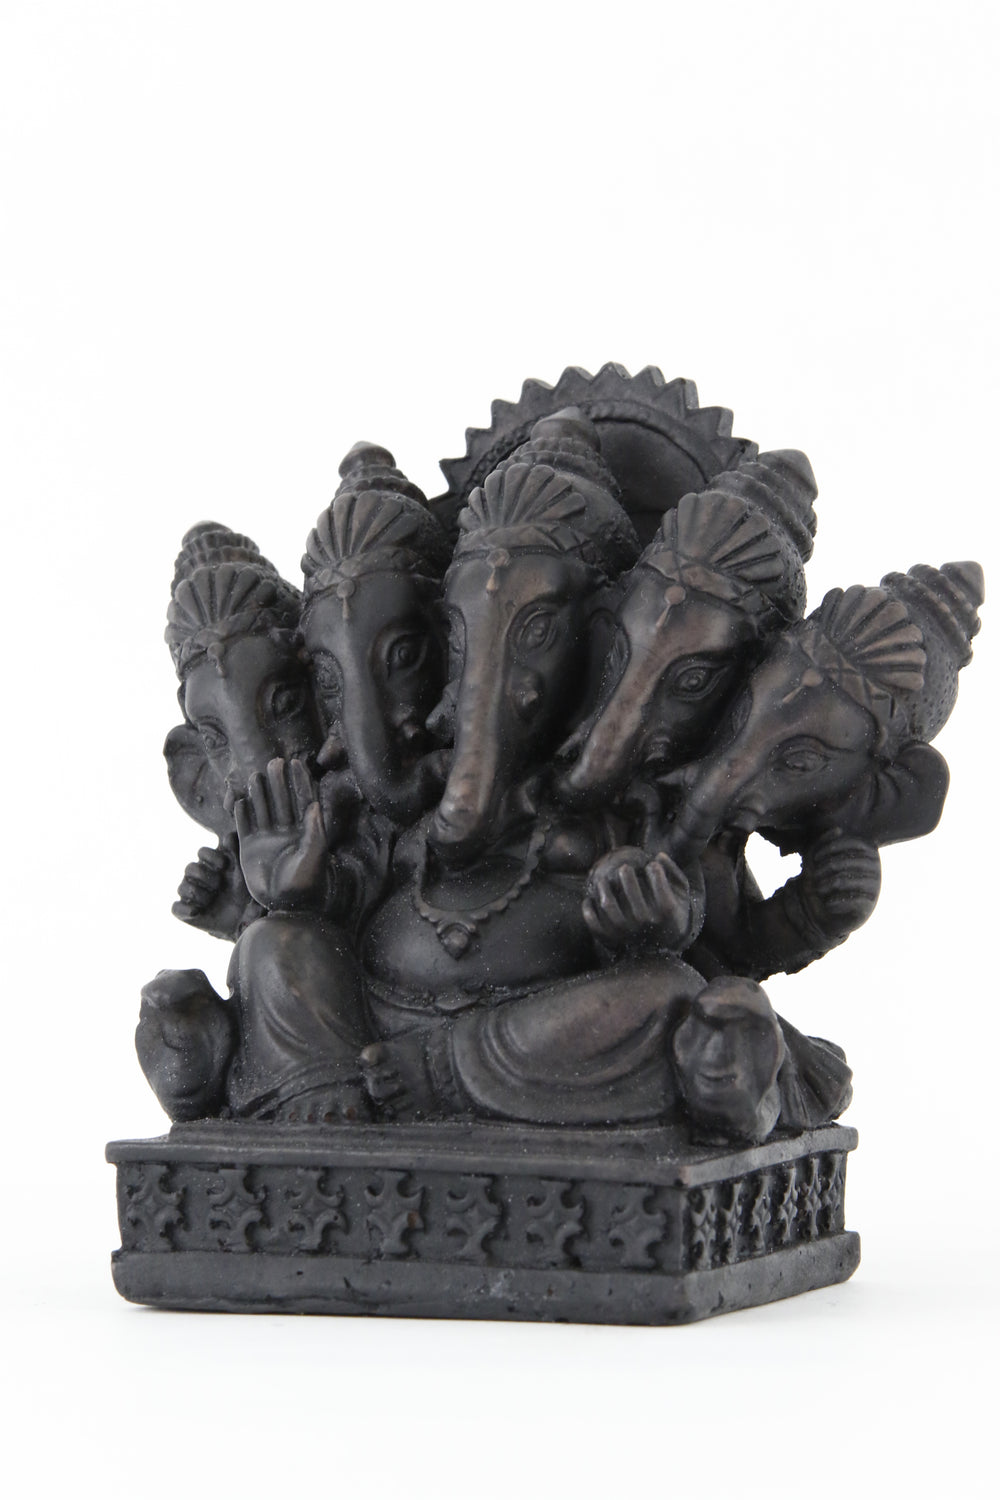 GANESHA MULTI HEAD STATUE DARK SIDE VIEW